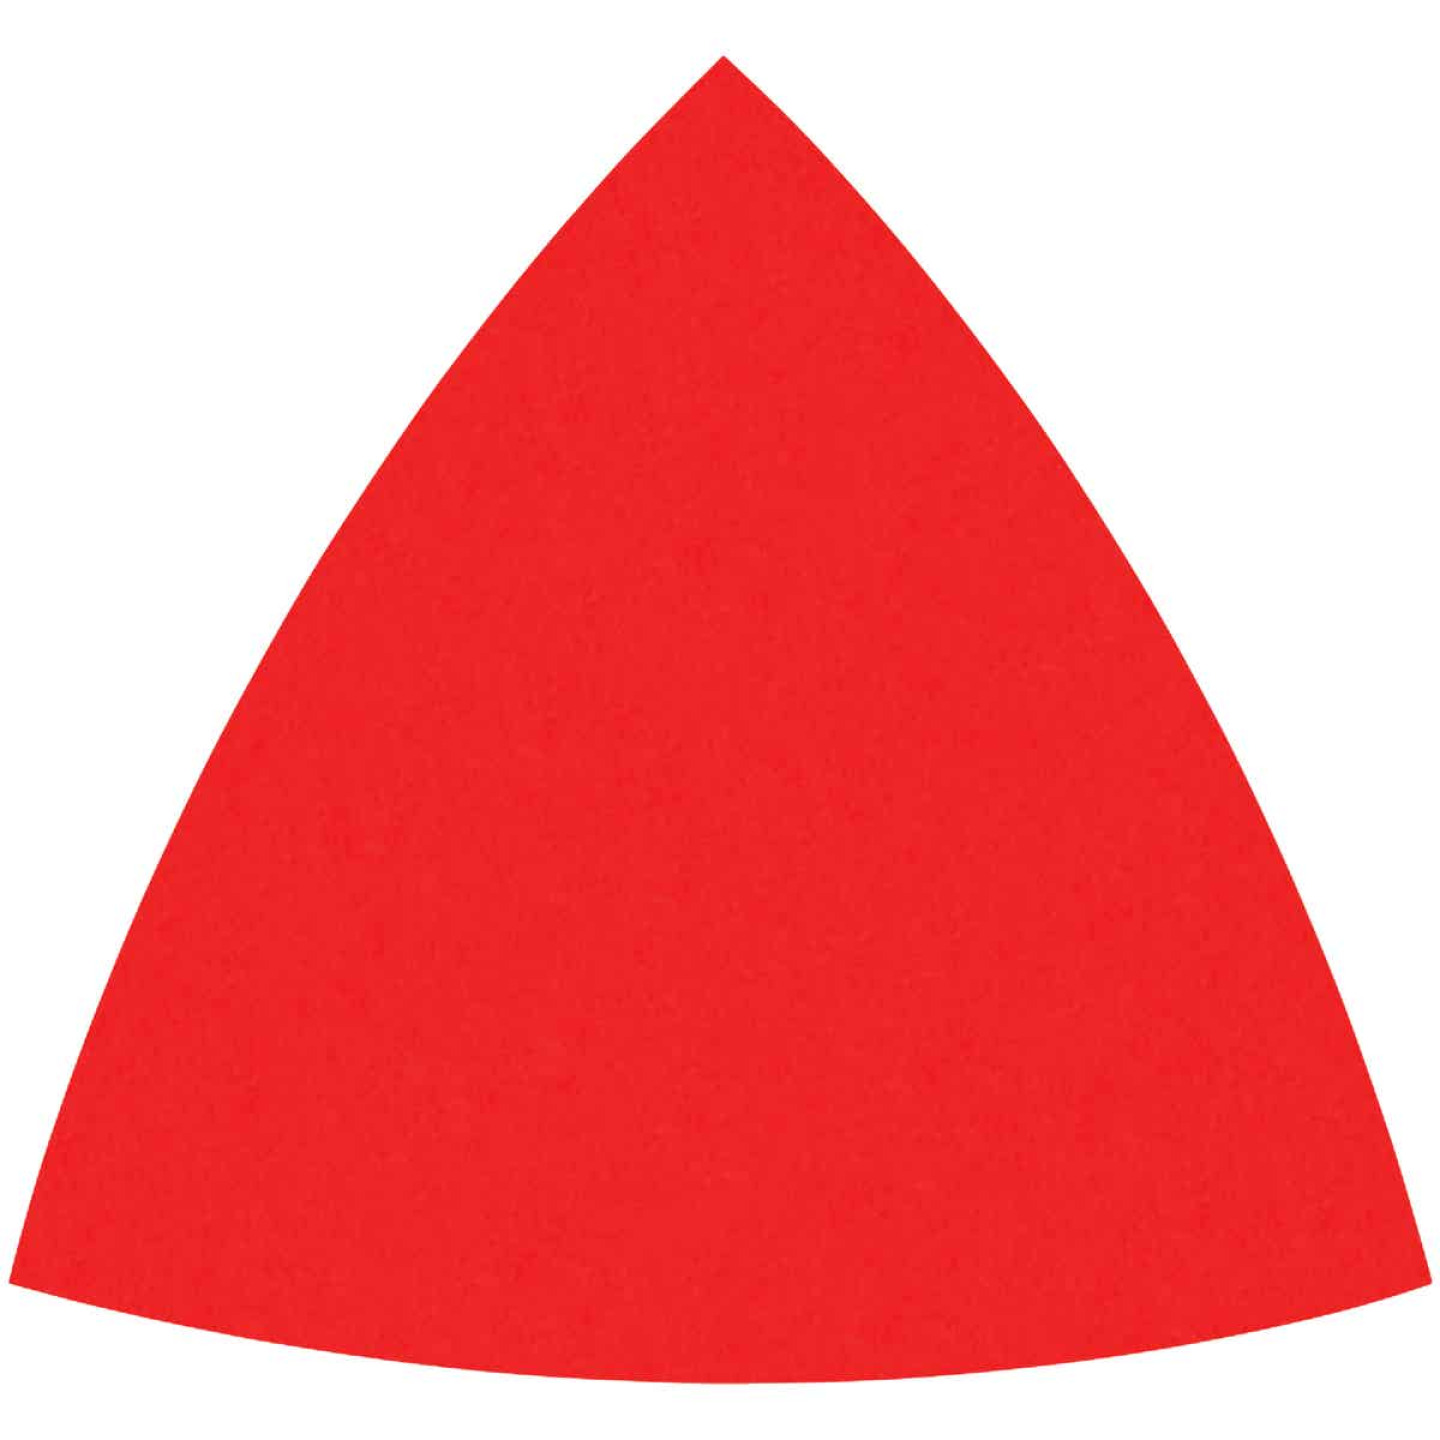 Diablo 220-Grit (Fine) 3-3/4 In. Oscillating Detail Triangle Sanding Sheets (10-Pack) Image 1